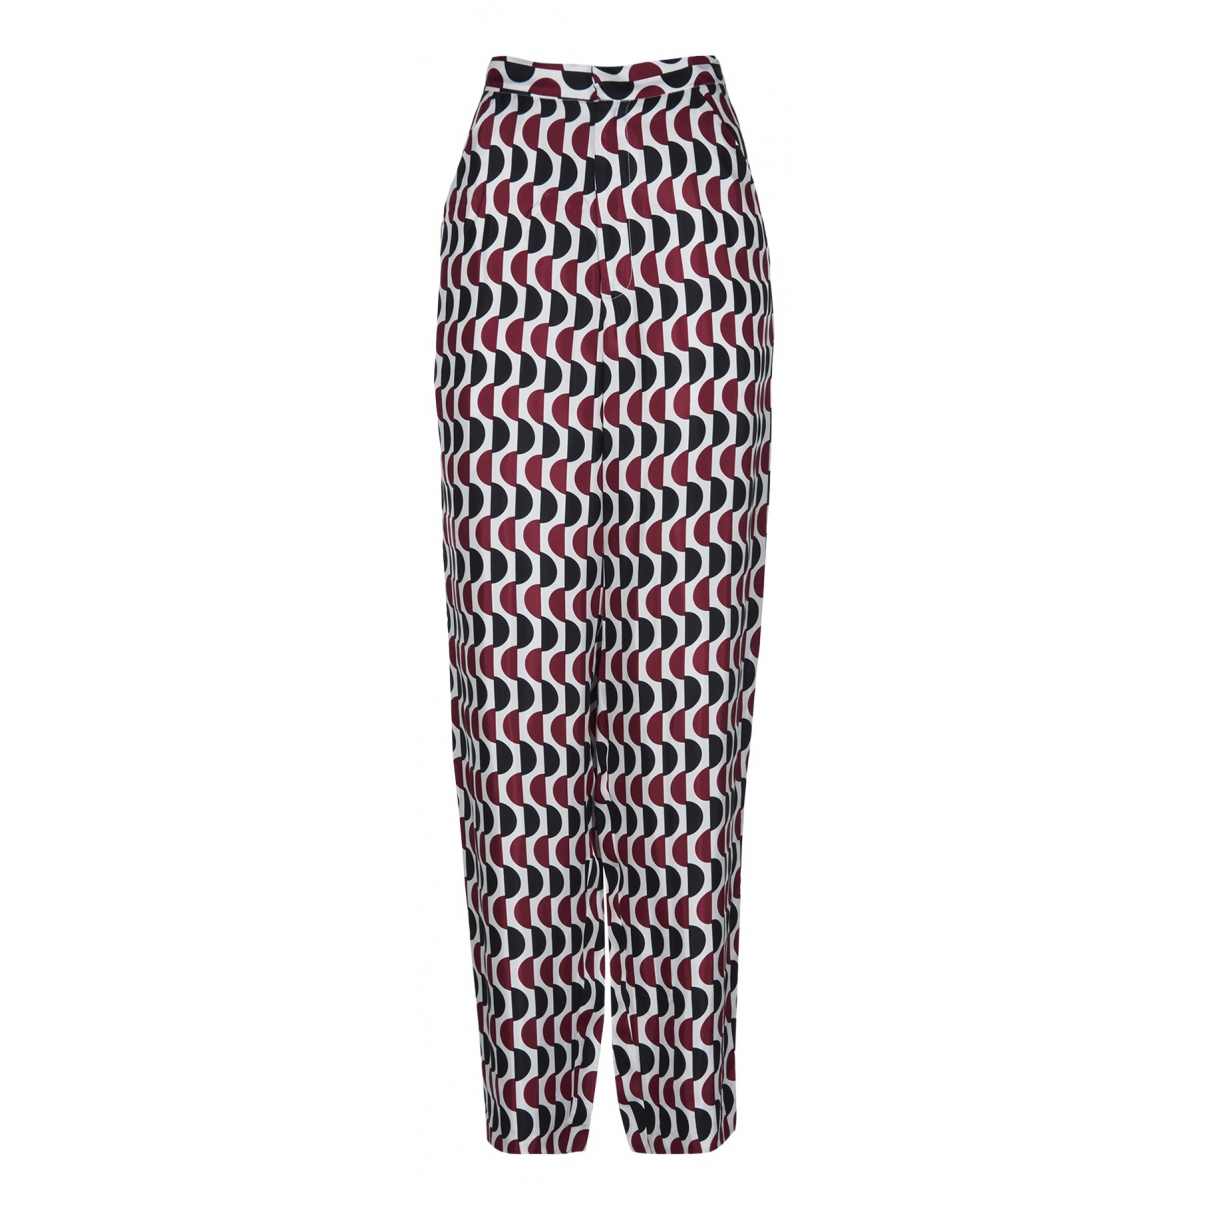 Marni N Multicolour Trousers for Women 12 UK